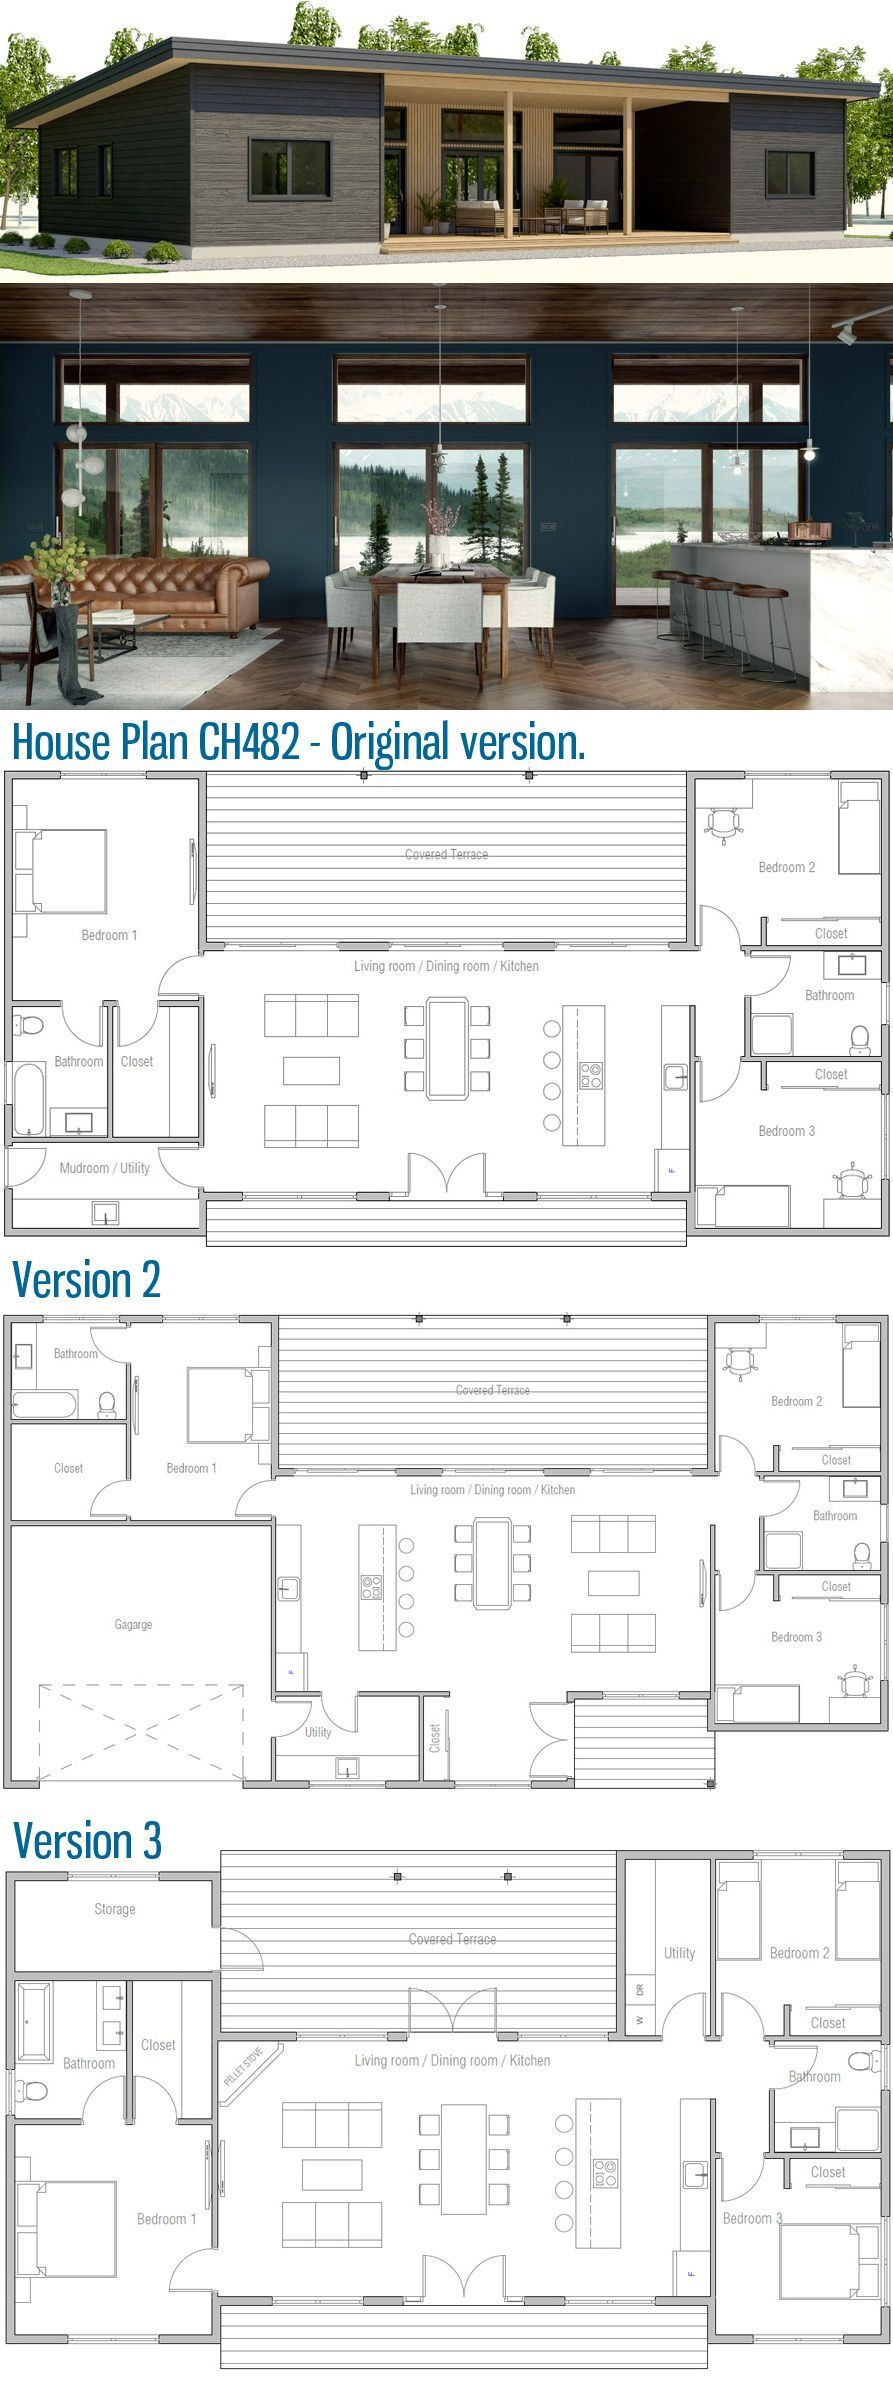 Small House Plan 1st Version But Turn The 3rd Bedroom Into The Kitchen Remove That Wall Set Two S Container House Plans Home Design Floor Plans House Plans